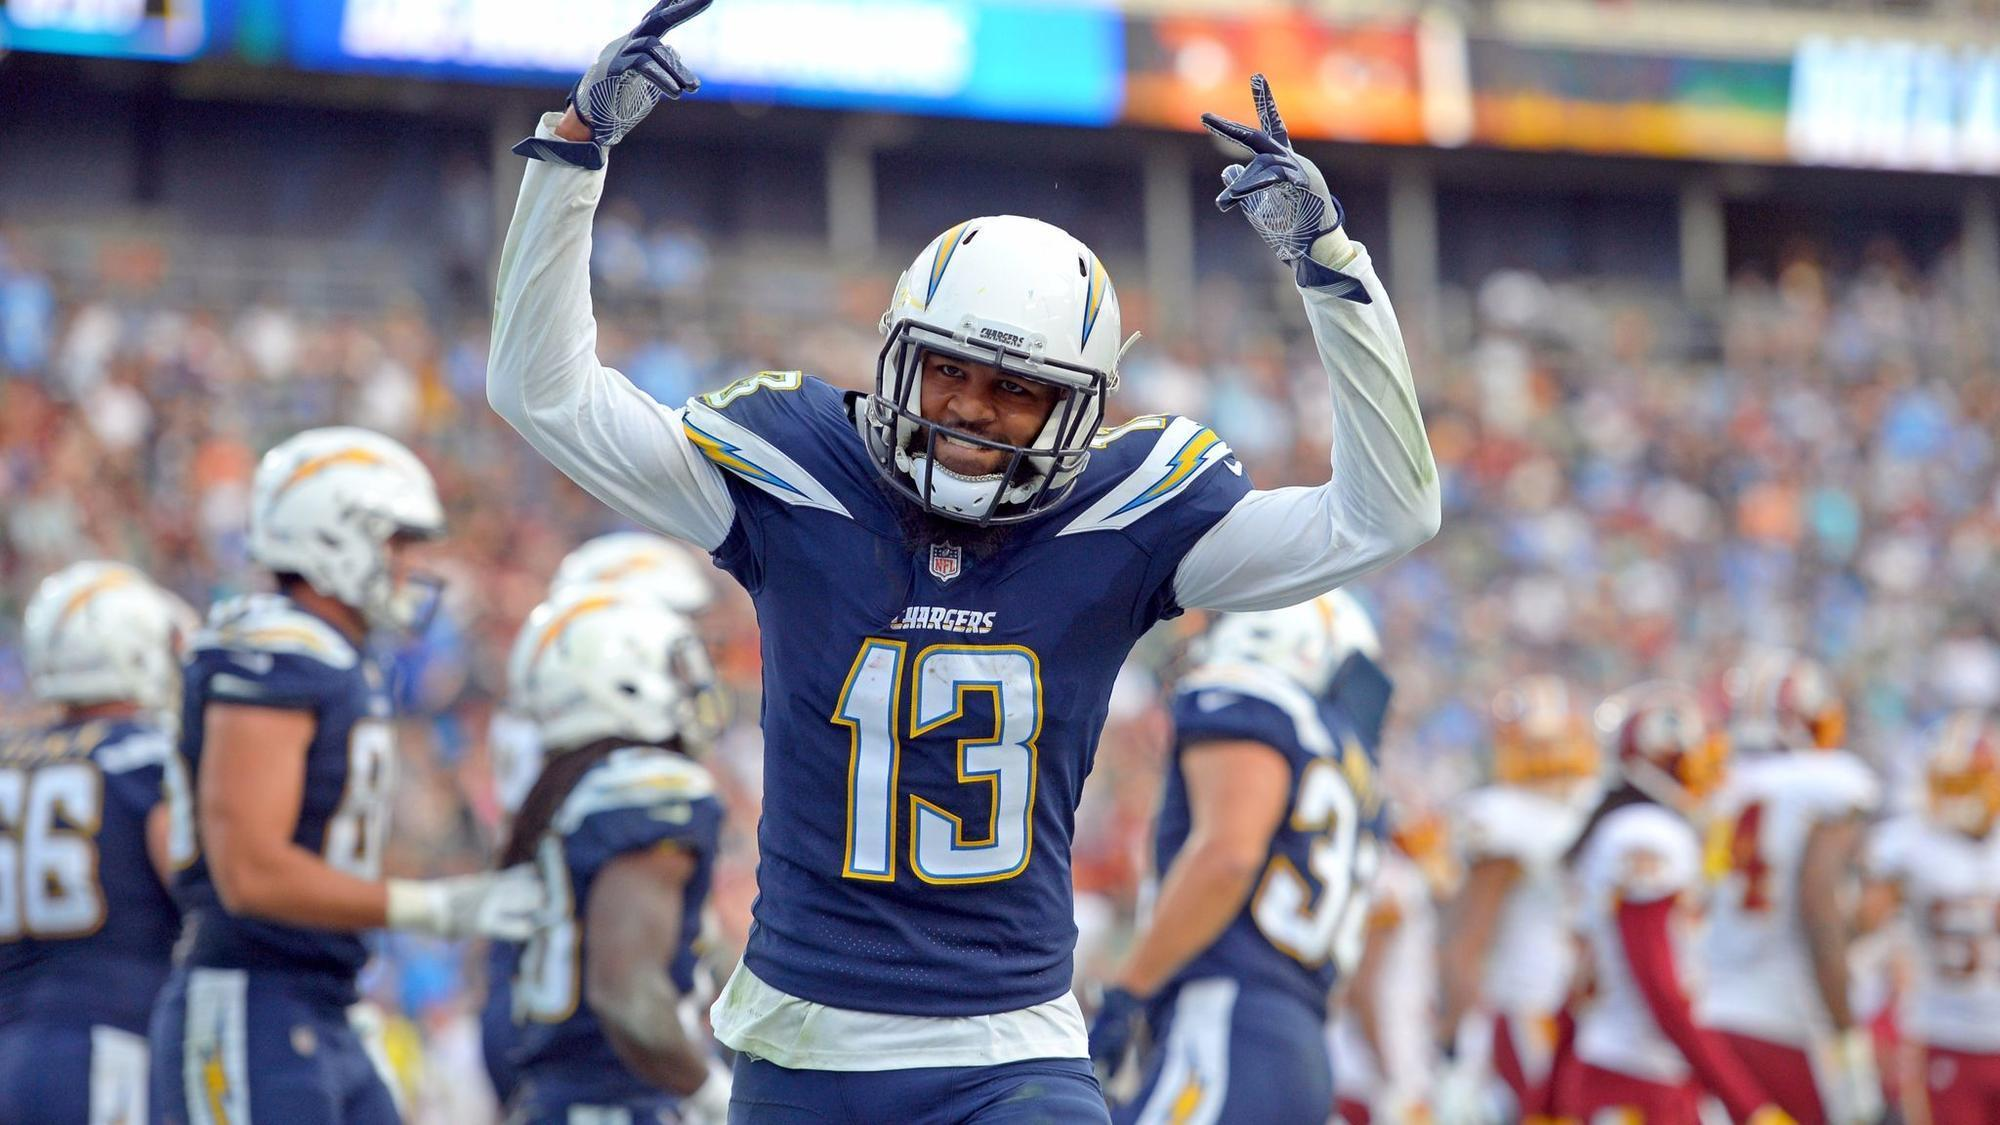 Sd-sp-chargers-have-had-better-health-this-year-than-rival-chiefs-20171211